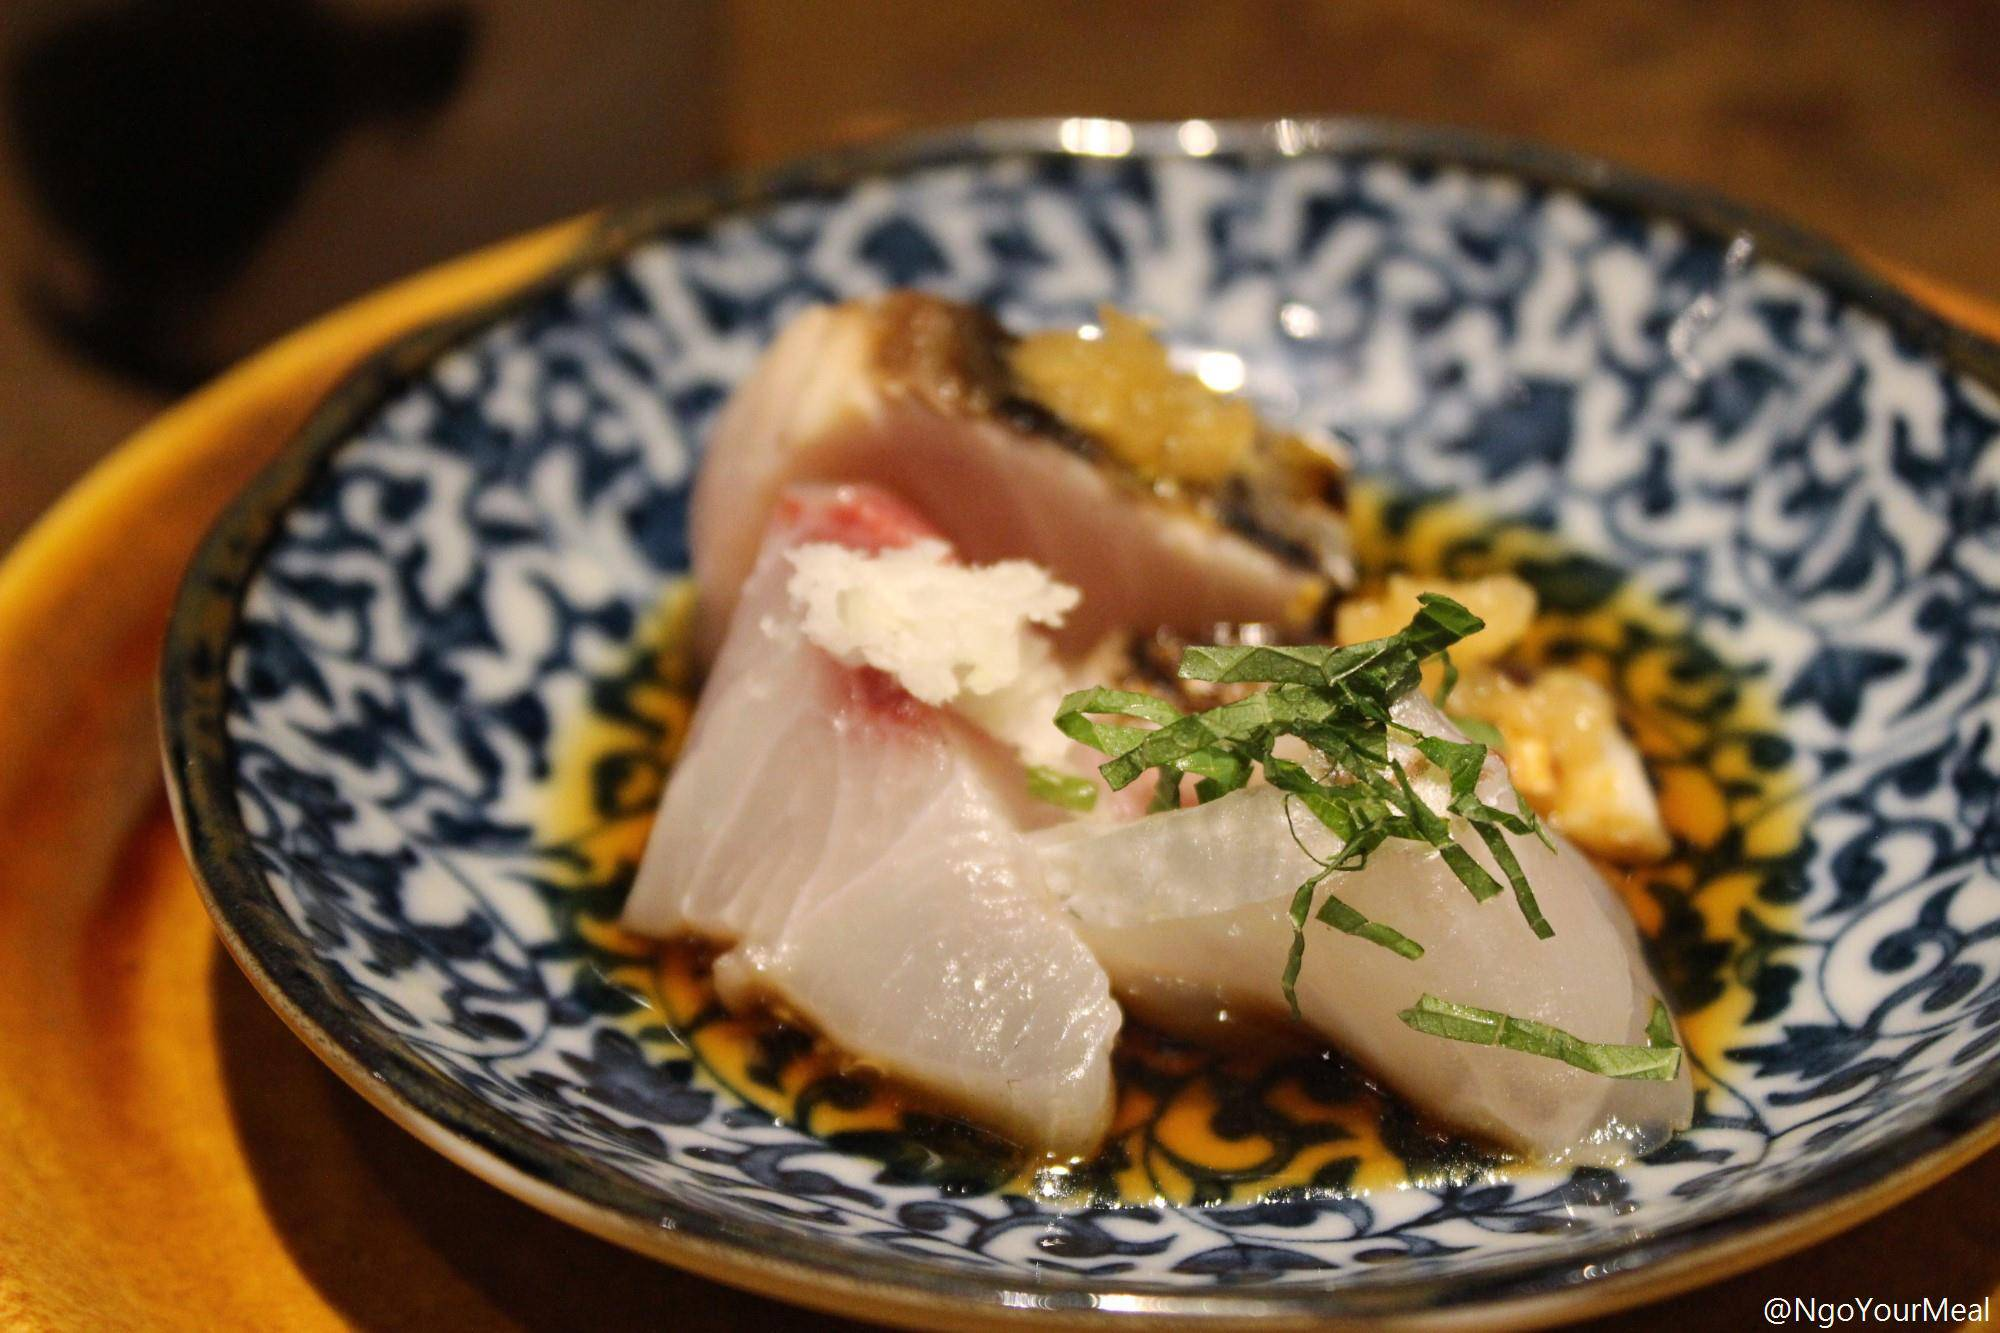 Blanched Sea Bream with Shiso, Spanish Mackerel with Mustard and Grated Apple, Kanpachi at Mecha Uma in the Philippines